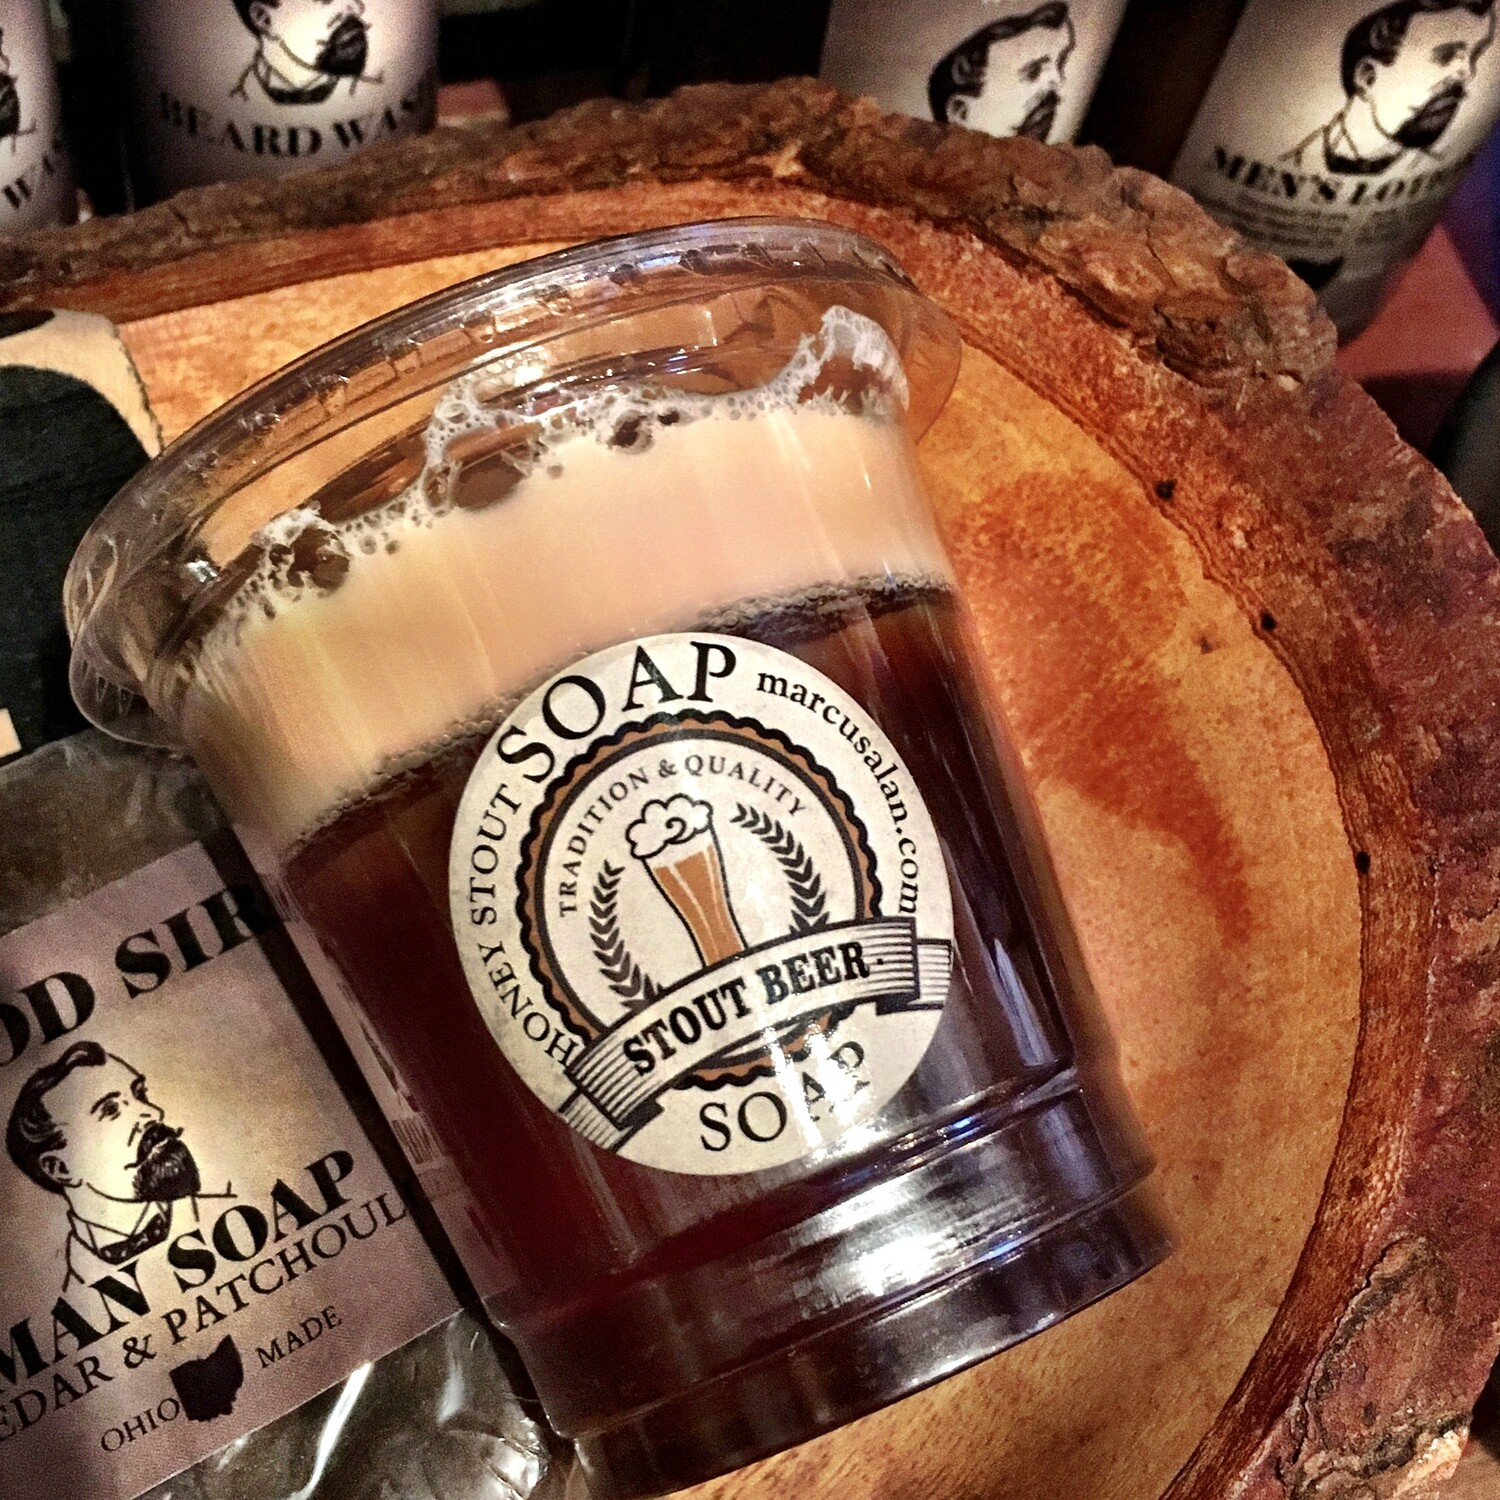 Pale Ale Stout - CUP-O-BEER Soap